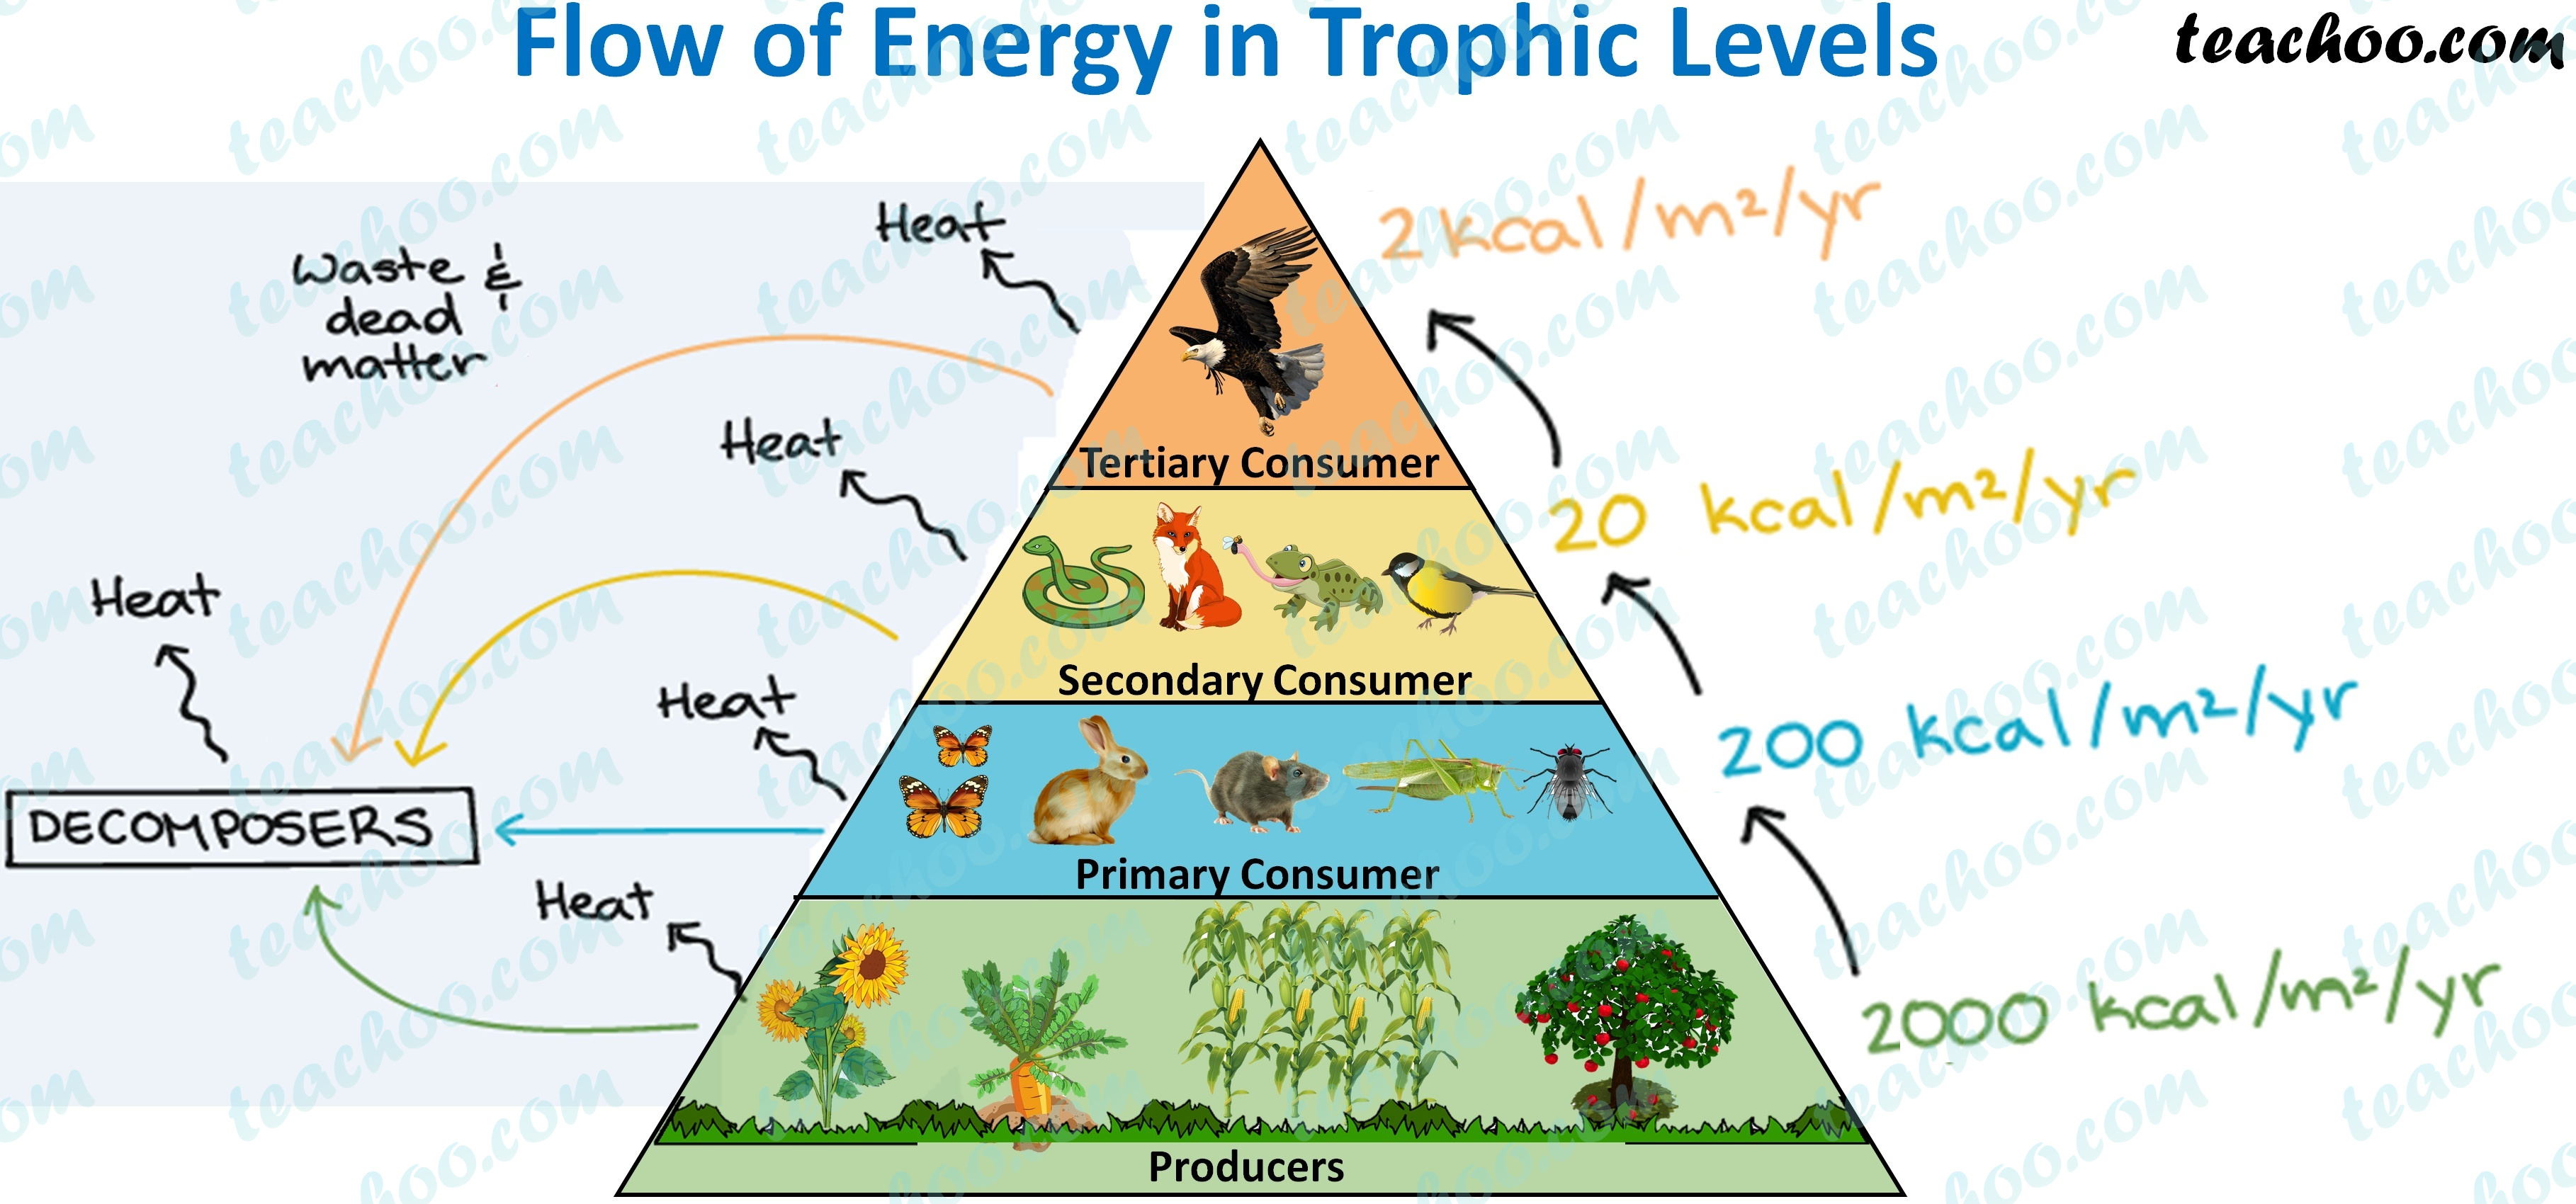 flow-of-energy-in-trophic-levels---teachoo.jpg